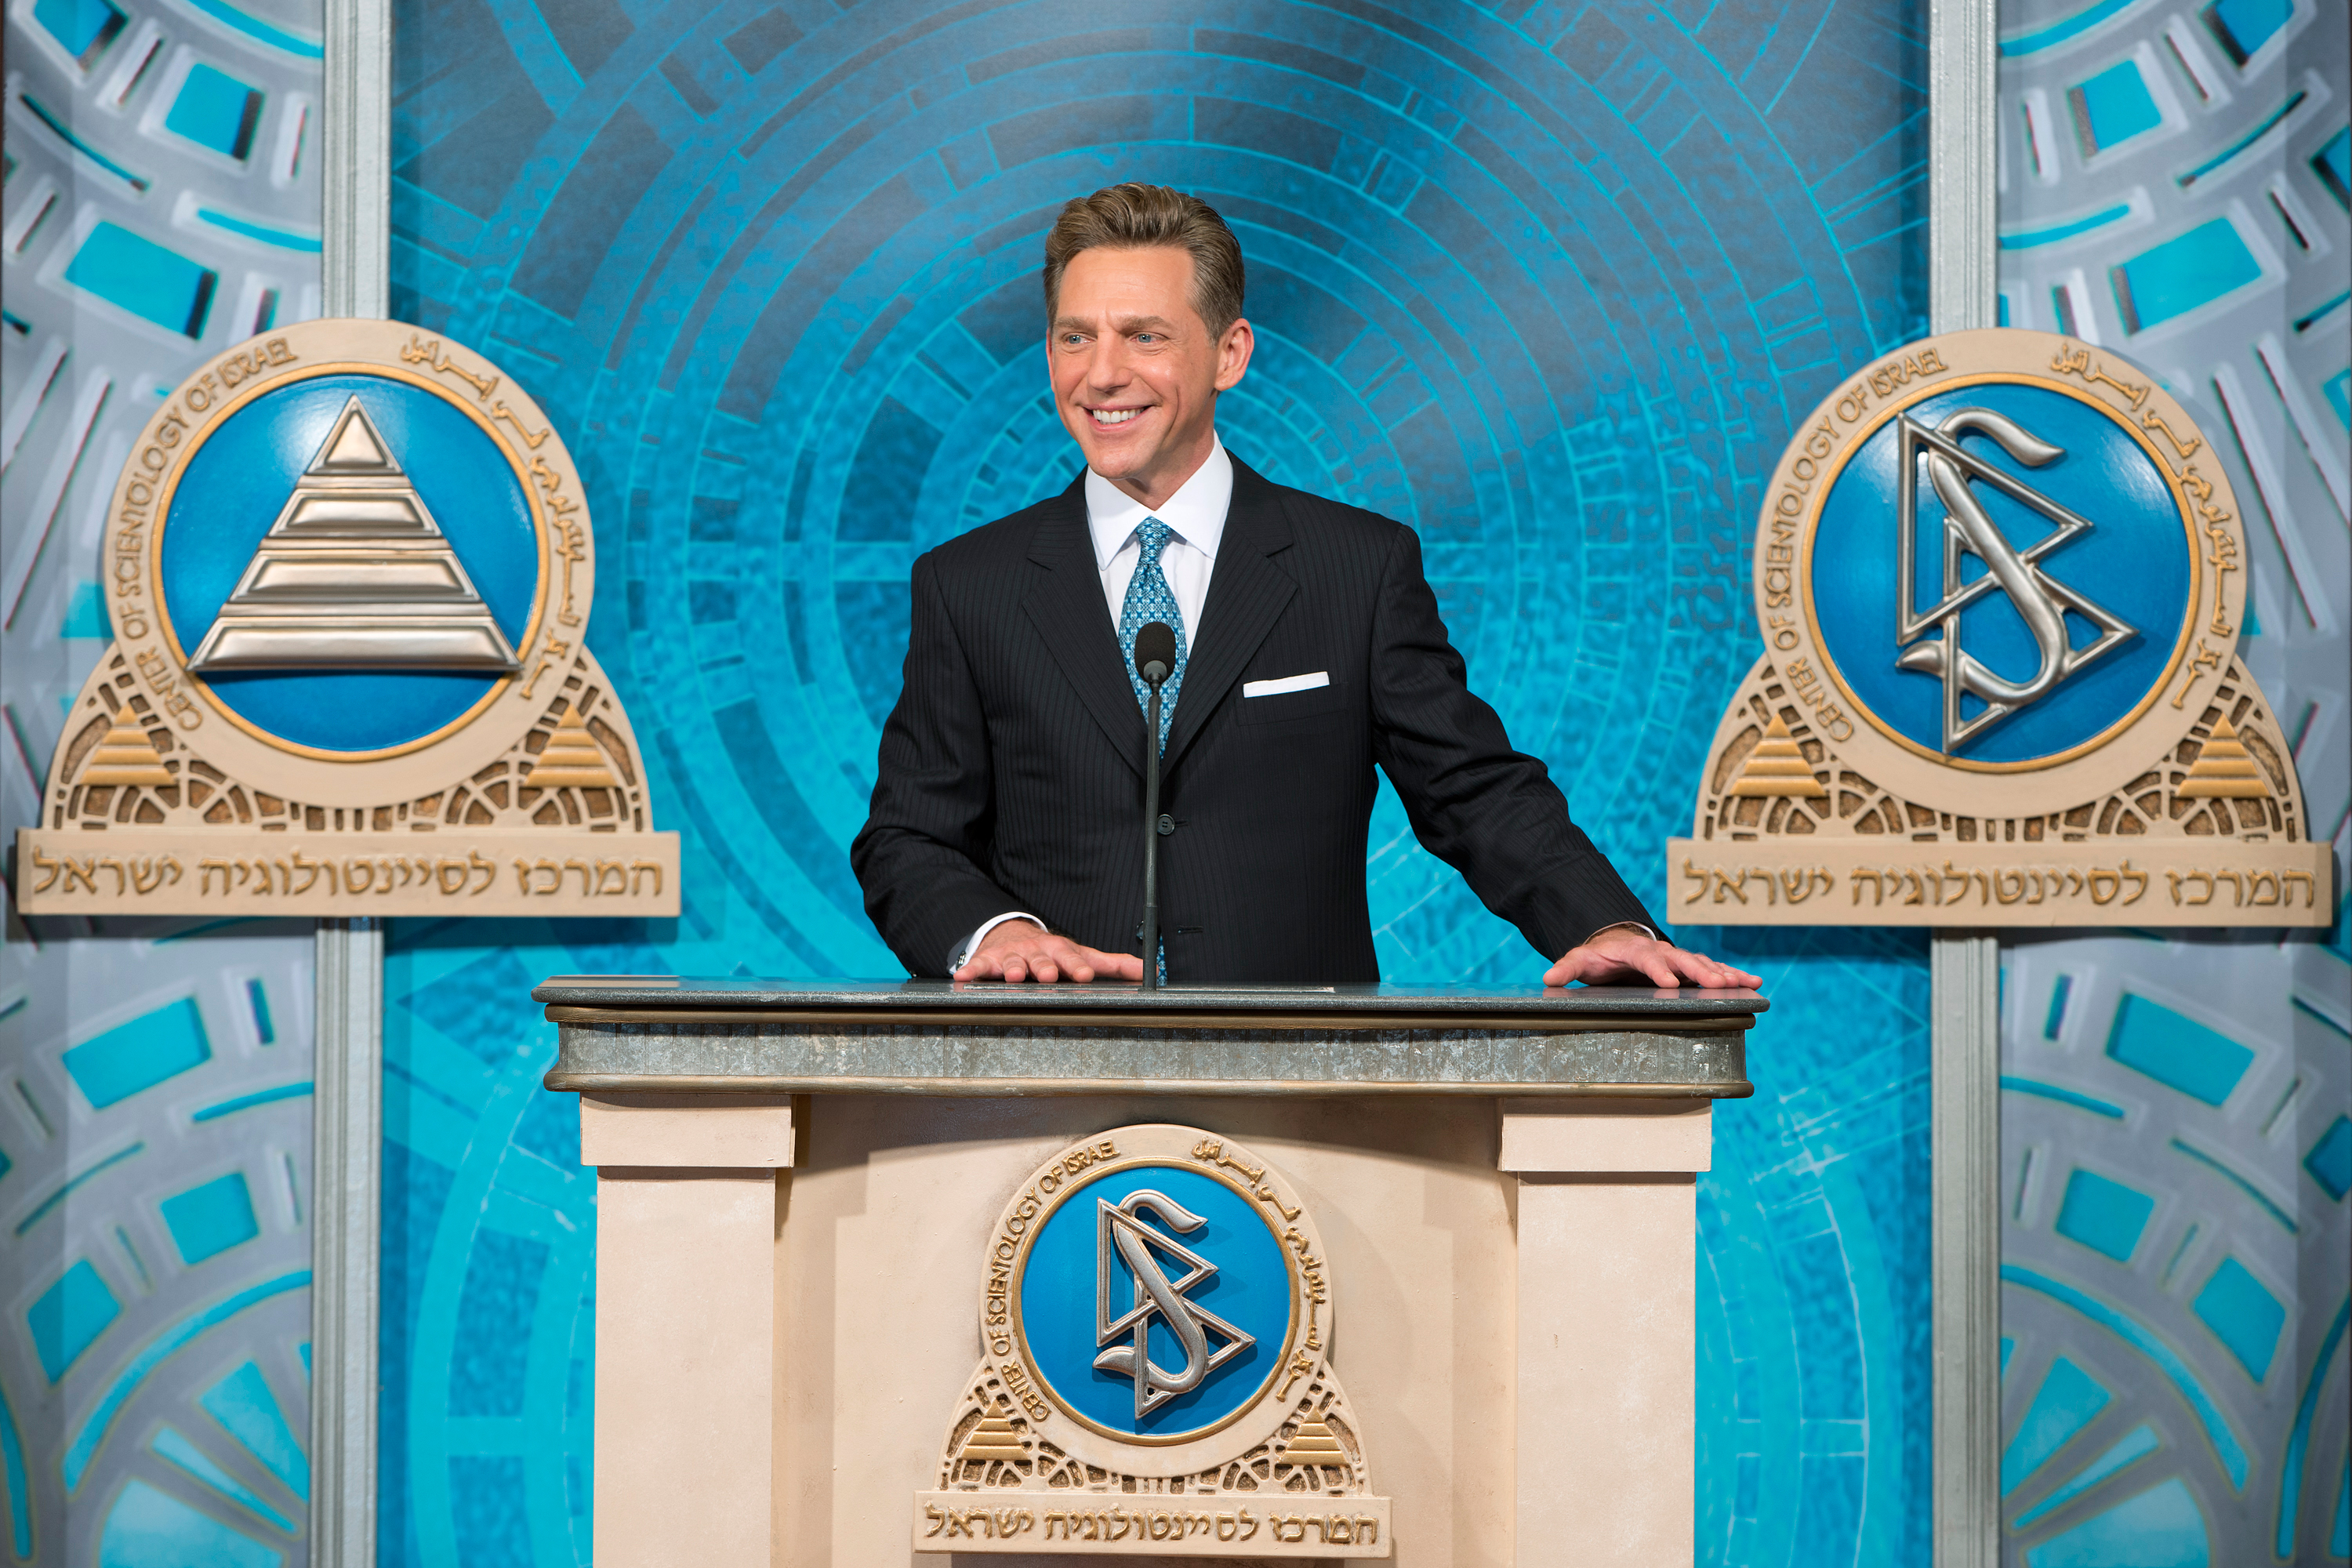 - 05-Center-of-Scientology-Tel-Aviv-David-Miscavige